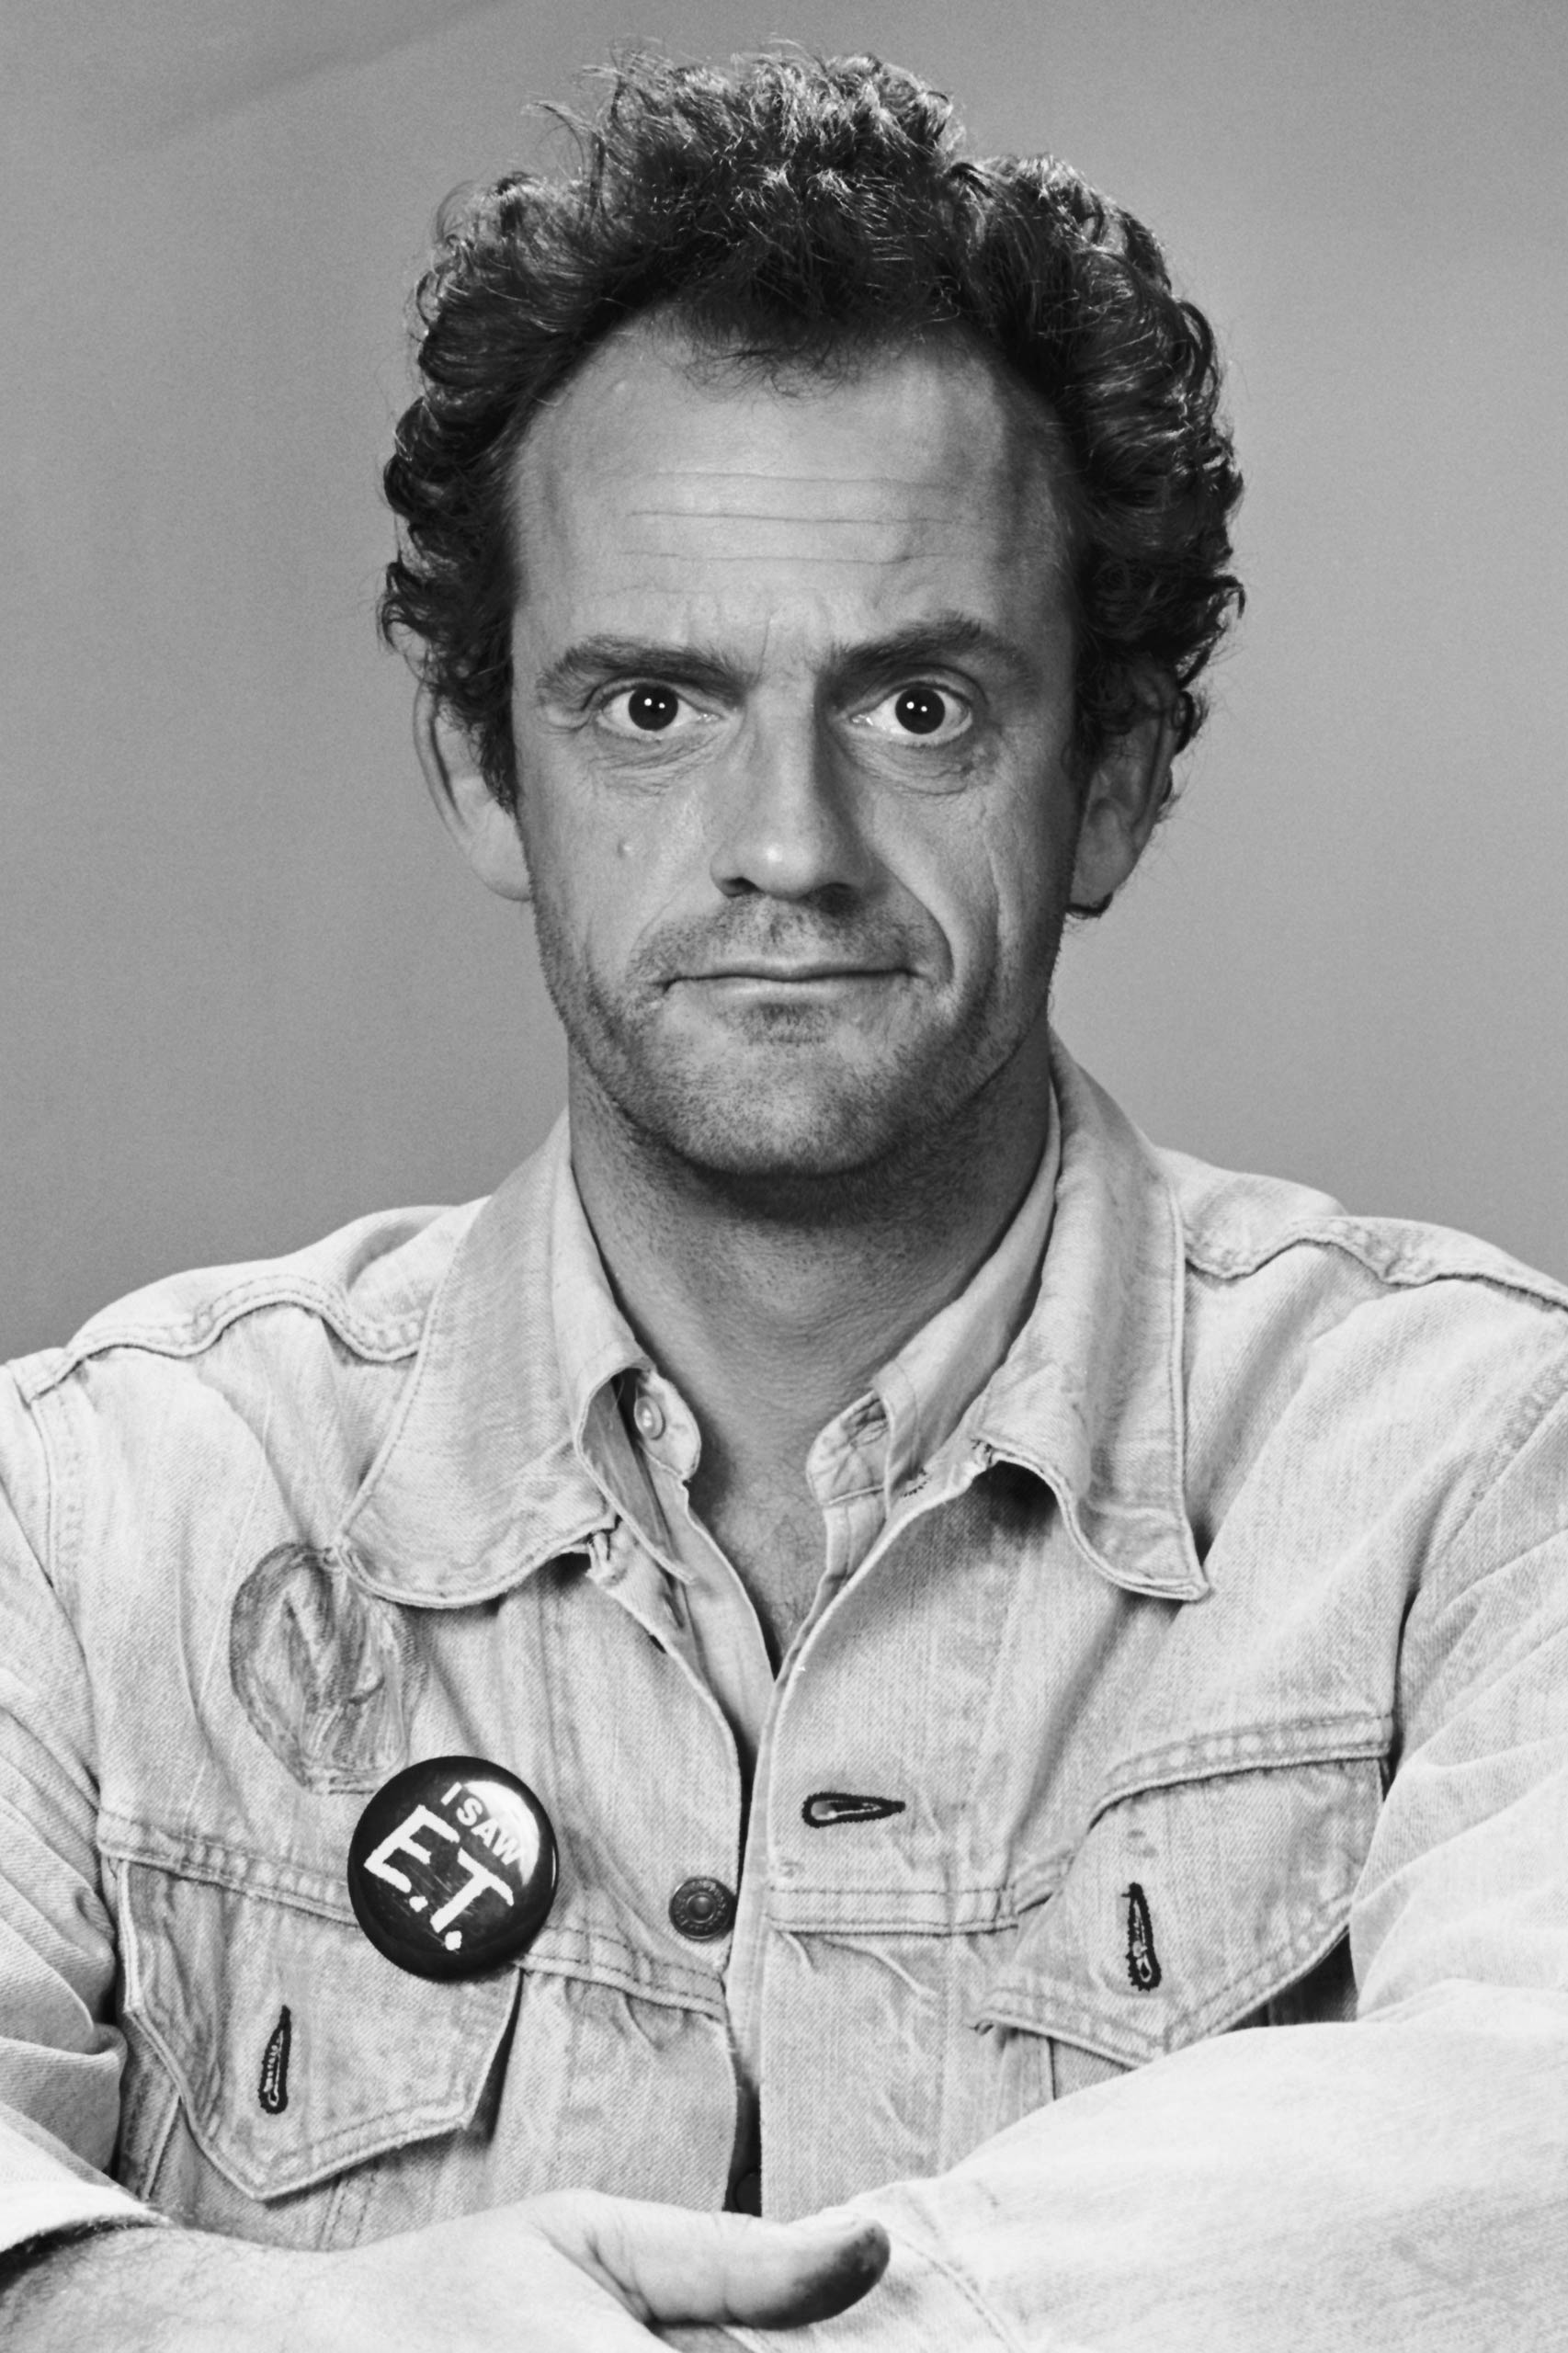 "<strong>Christopher Lloyd</strong>                                   The time traveler with the iconic static cling hair landed his first movie gig as a psychiatric patient in <i>One Flew Over the Cuckoo's Nest</i>, but he spent most of his early career in the spotlight as an ex-hippie cabbie named ""Reverend"" Jim Ignatowski on the sitcom <i>Taxi</i>."